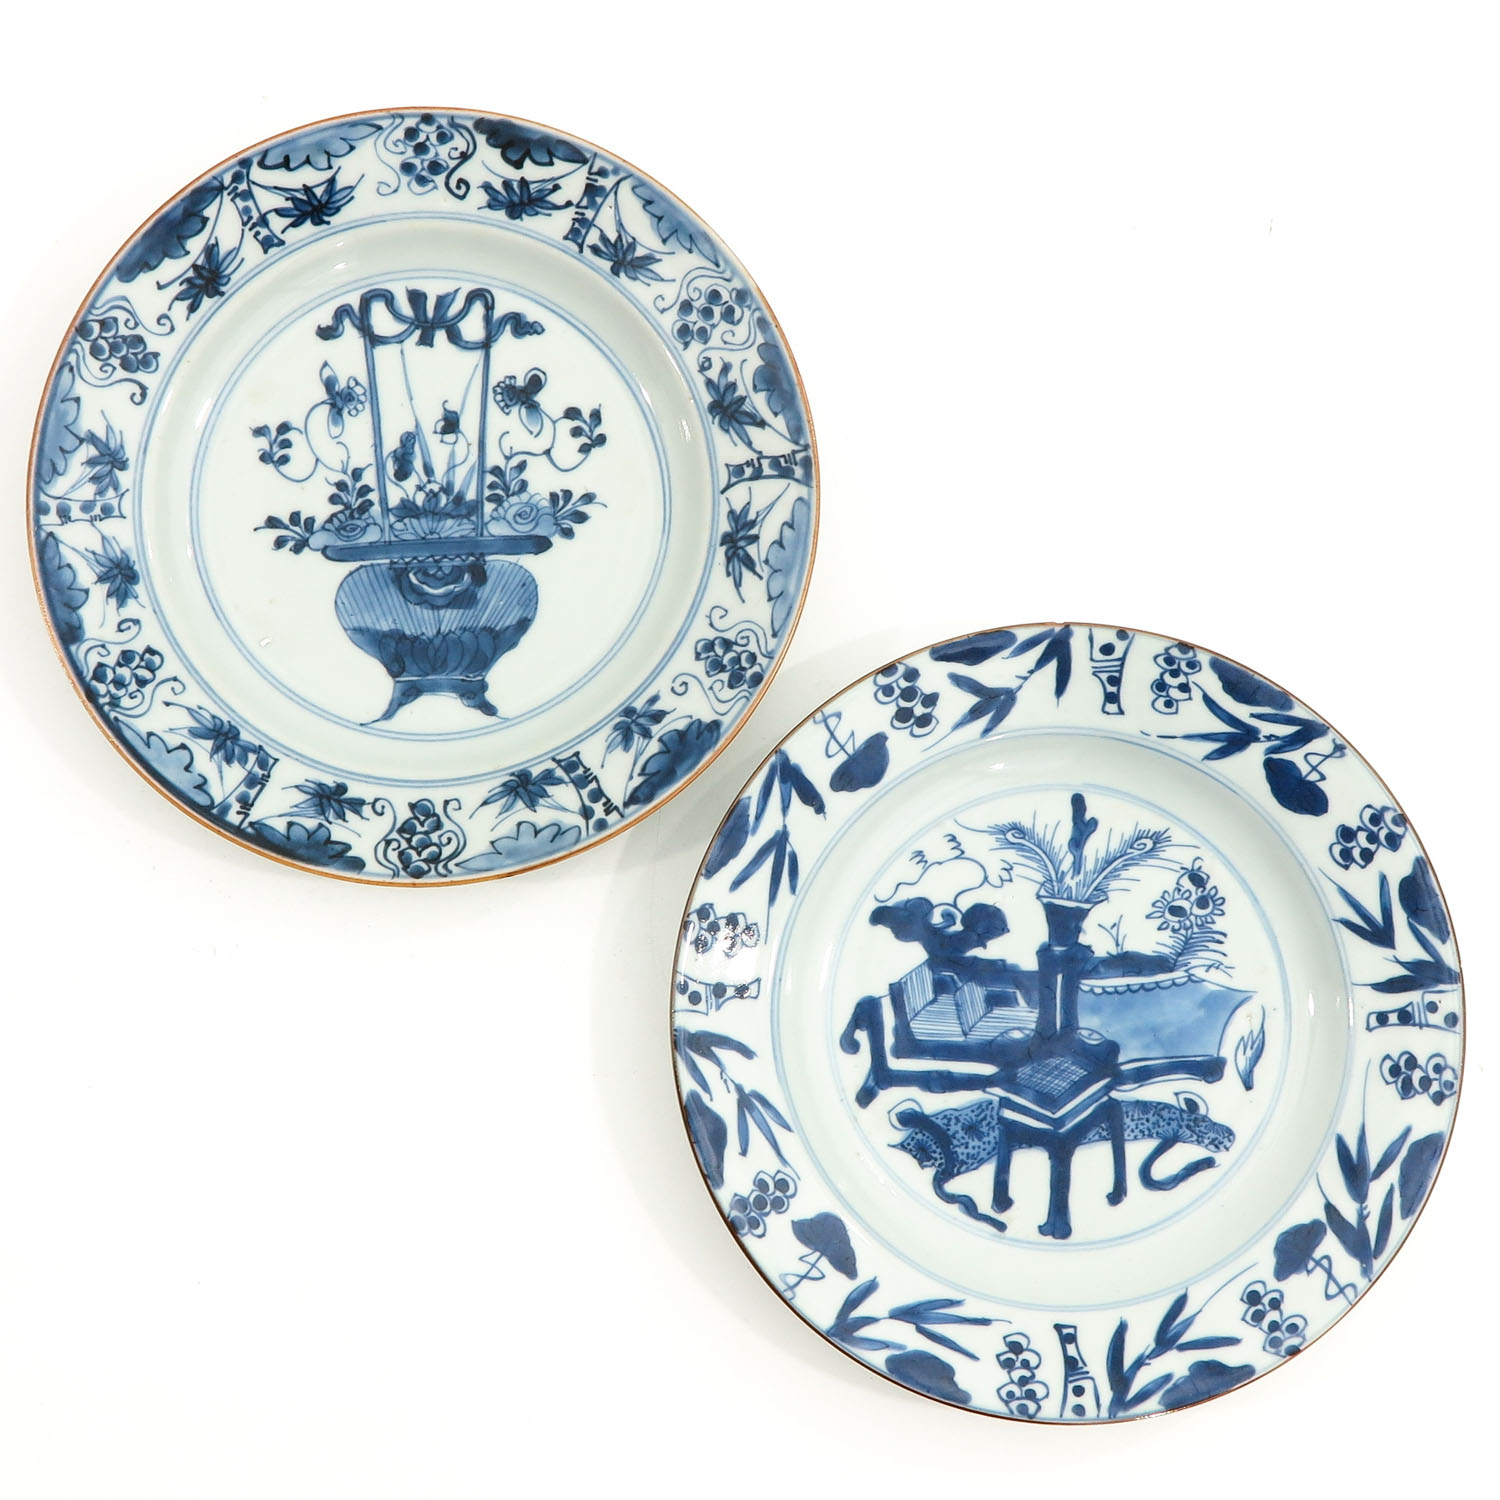 A Series of 6 Blue and White Plates - Image 7 of 10